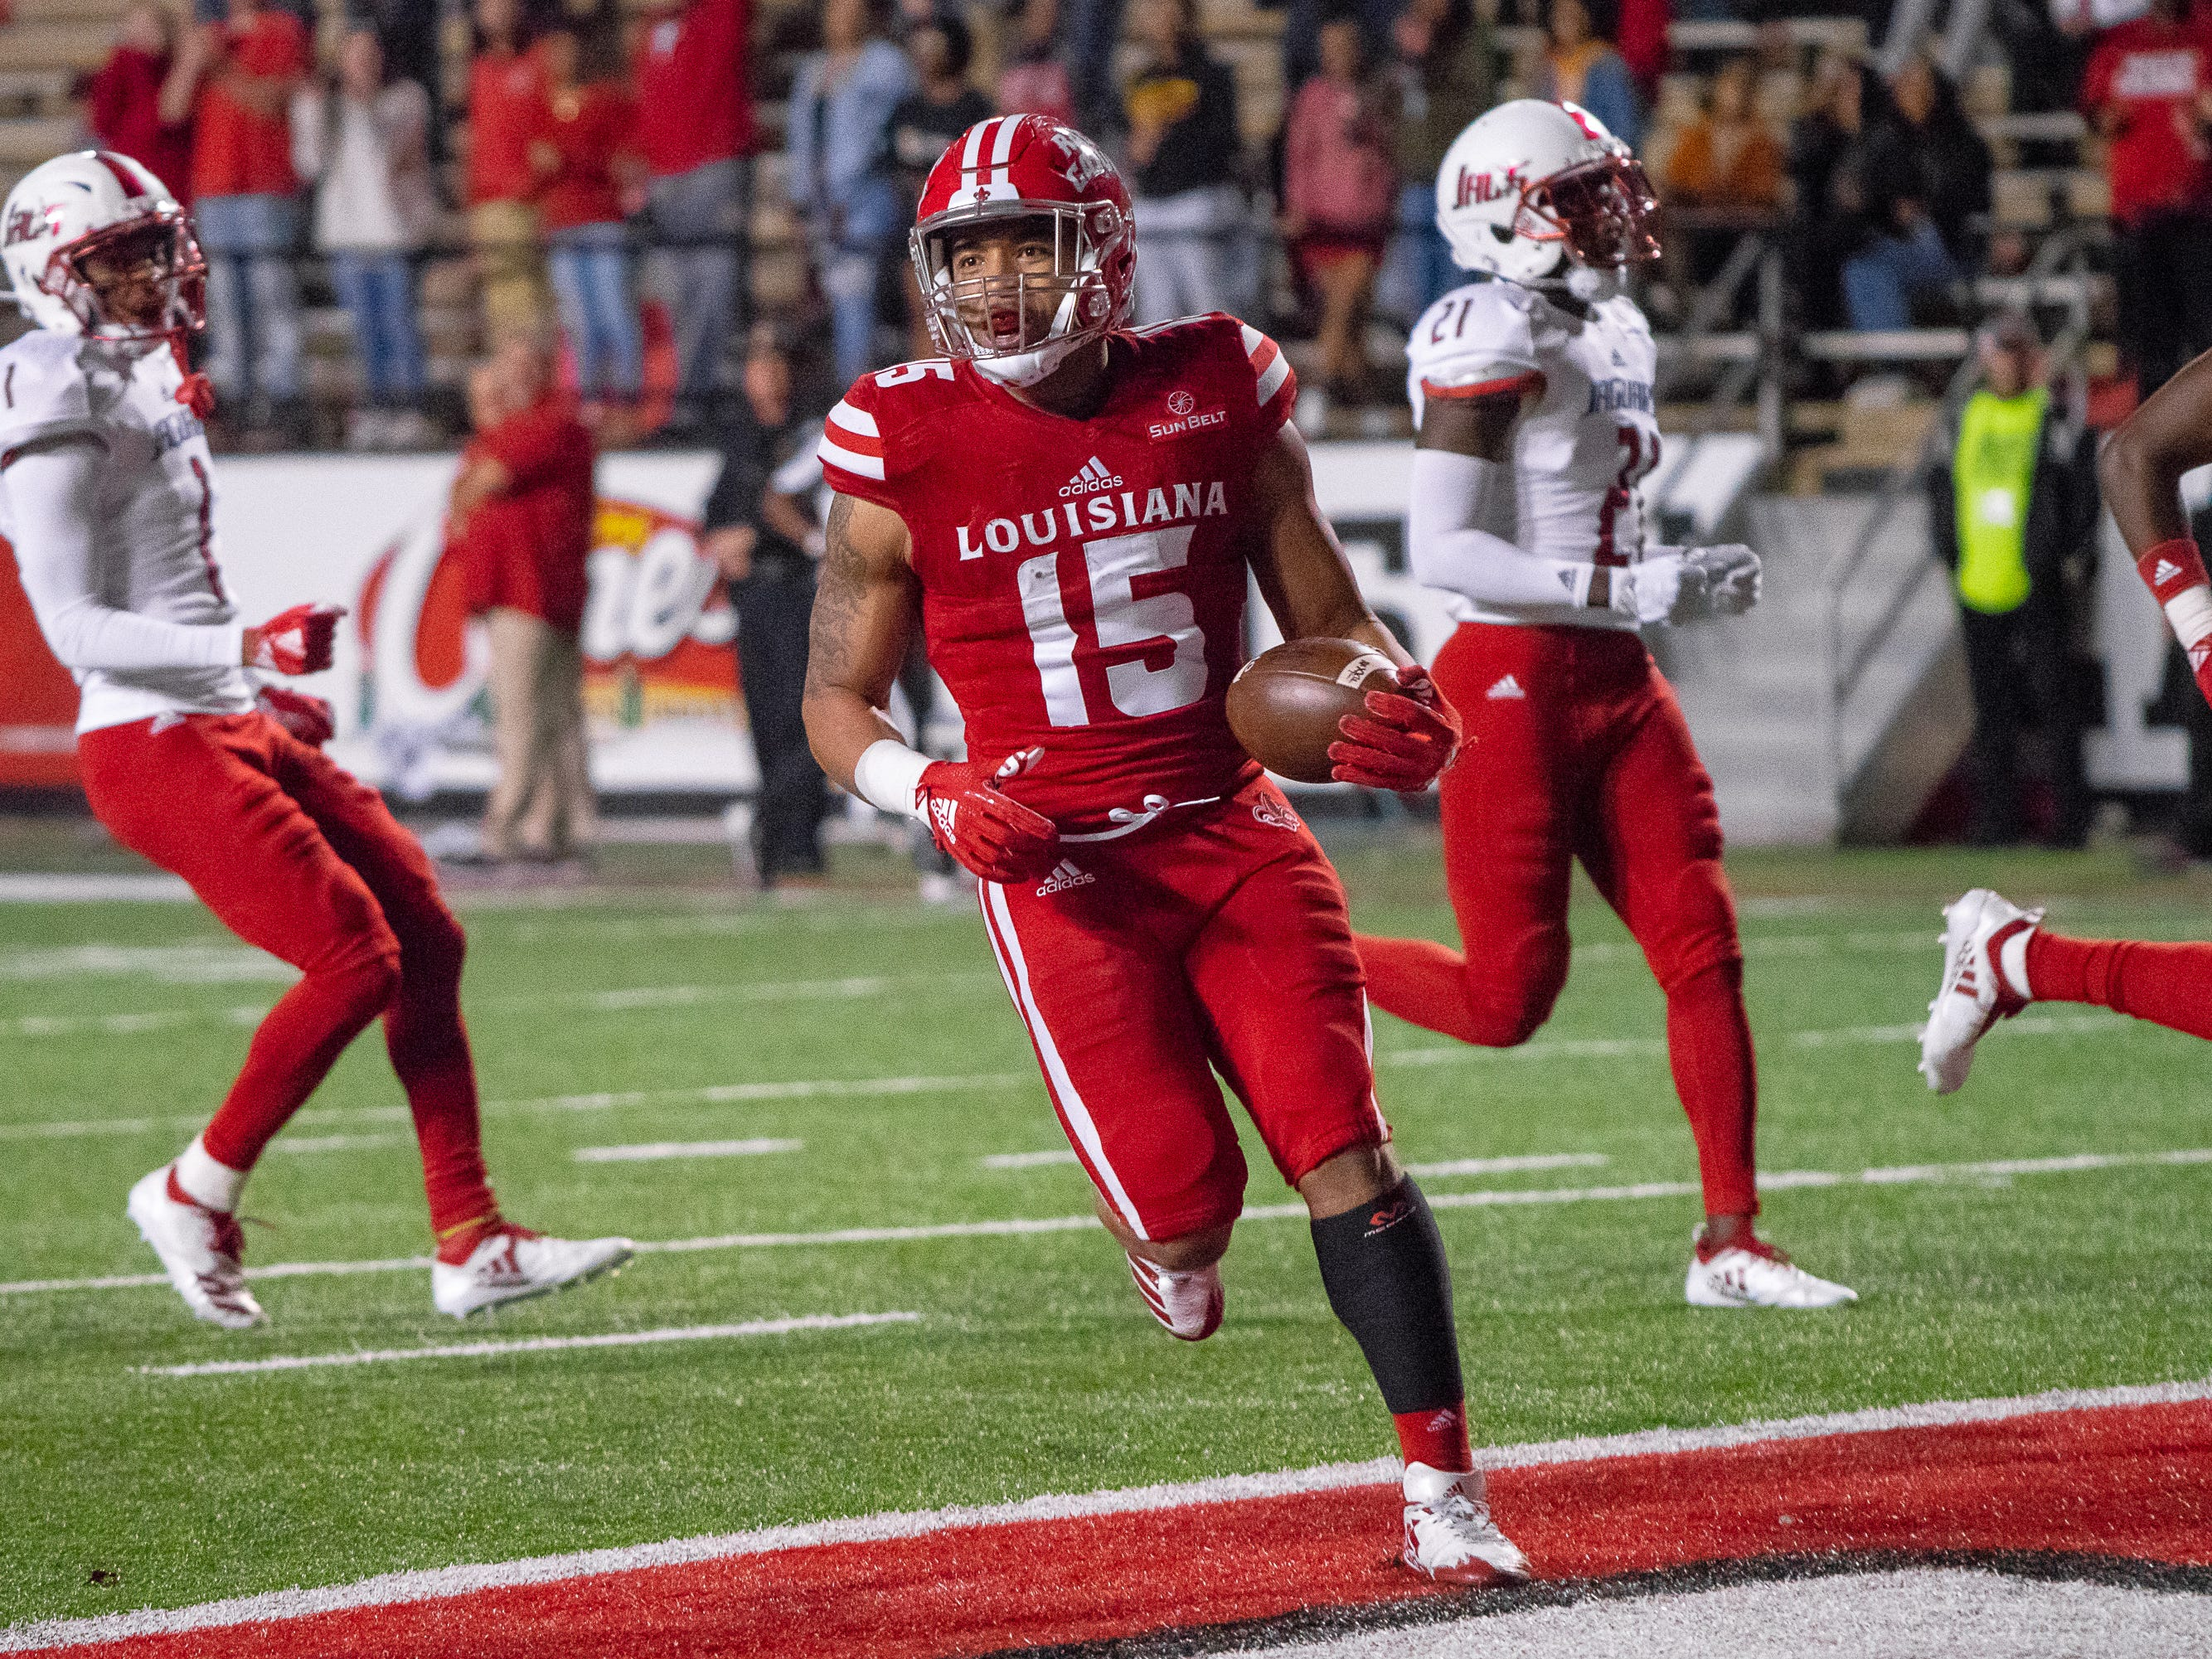 UL's Elijah Mitchell runs into the endzone to score a touchdown for his team as the Ragin' Cajuns play against the South Alabama Jaguars at Cajun Field on November 17, 2018.